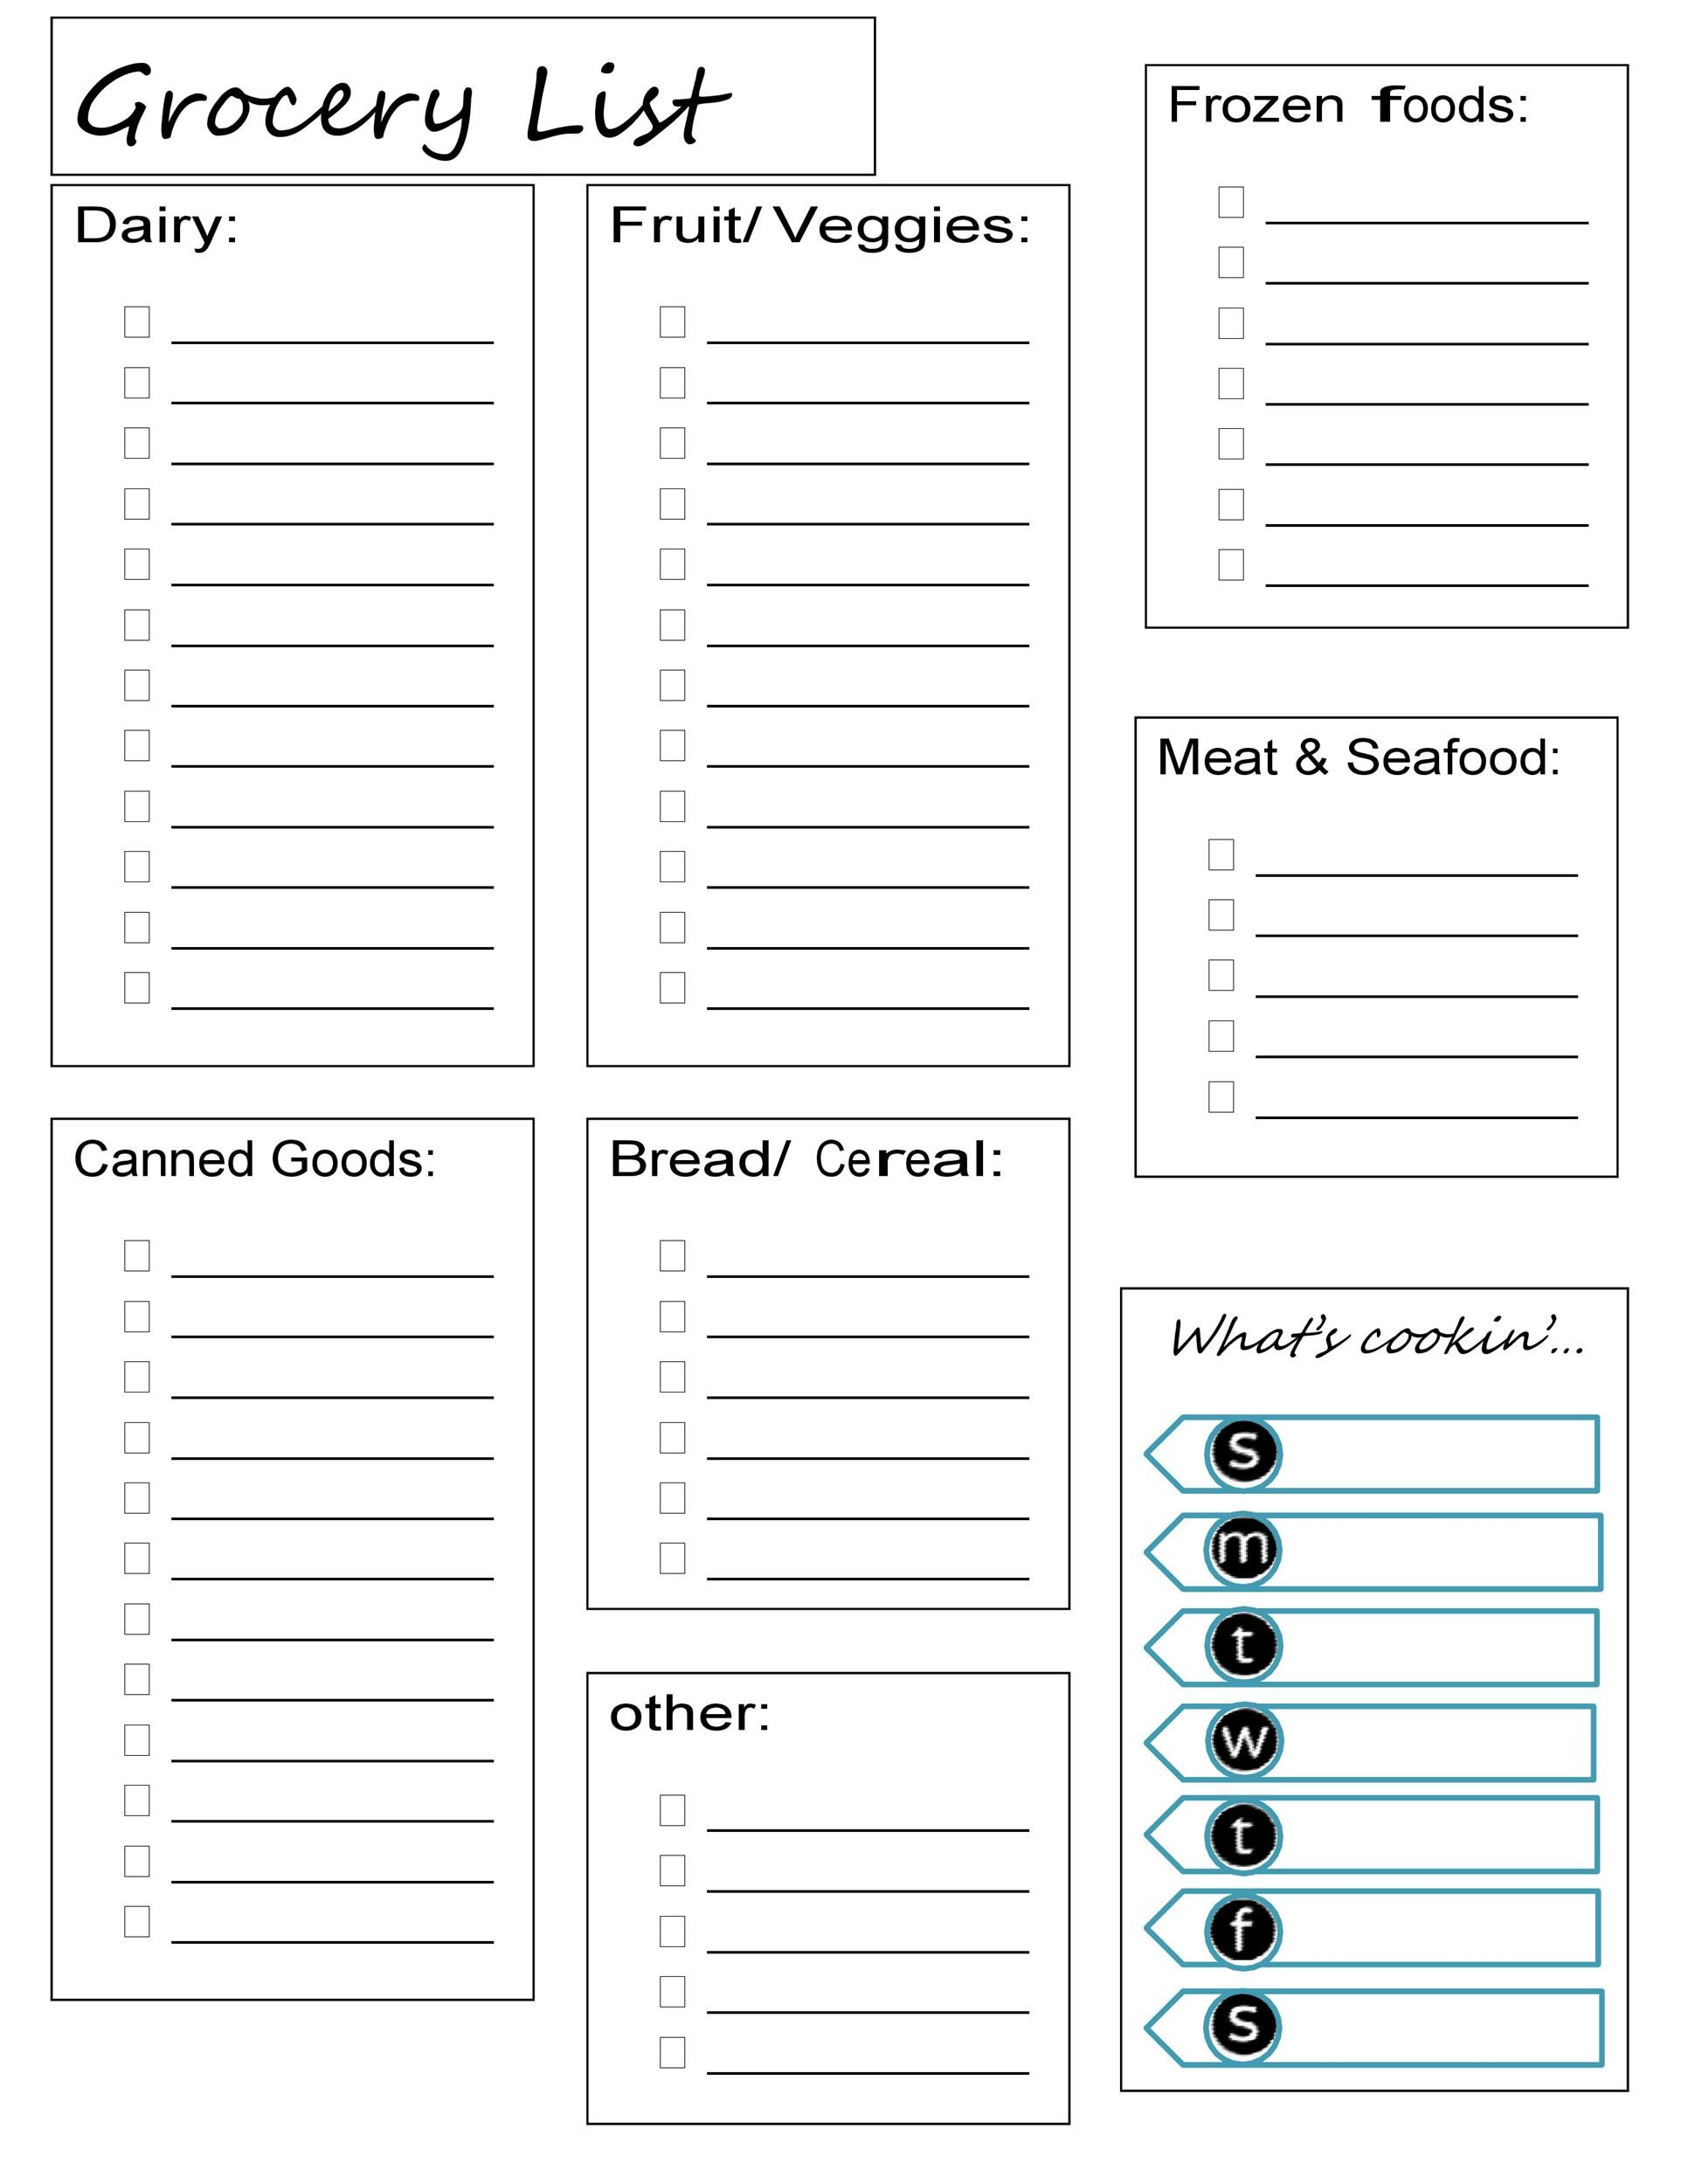 40+ Printable Grocery List Templates (Shopping List) ᐅ ...